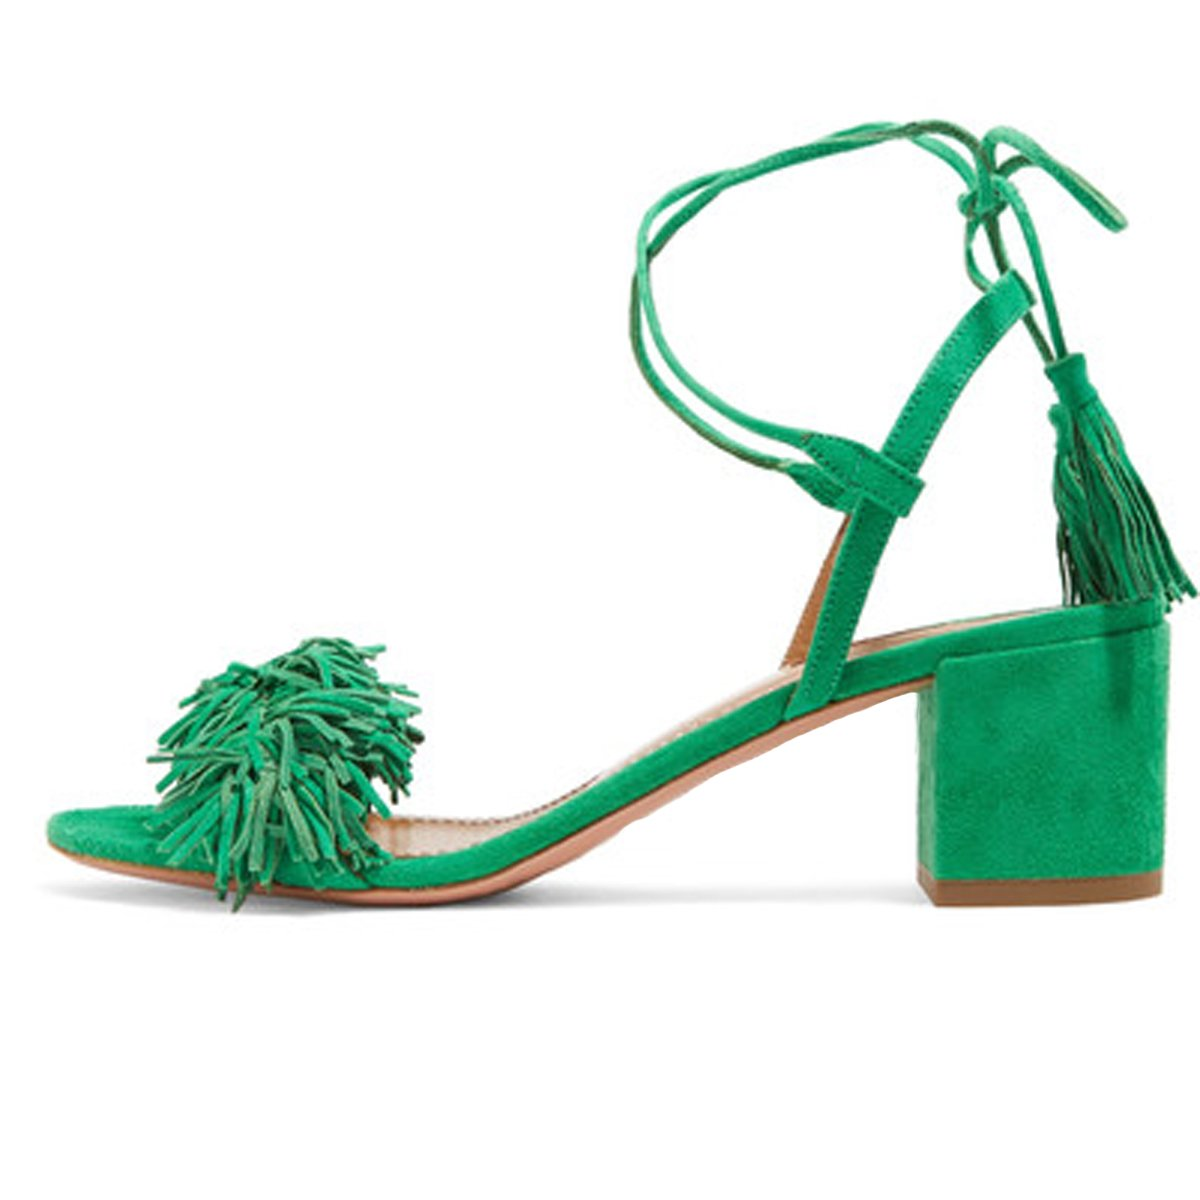 9d0bee8103 Comfity Block Heels for Women Women's Lace Up Sandals Fringed Tassel Shoes  Ankle Ties Dress Sandals 14 M US Green